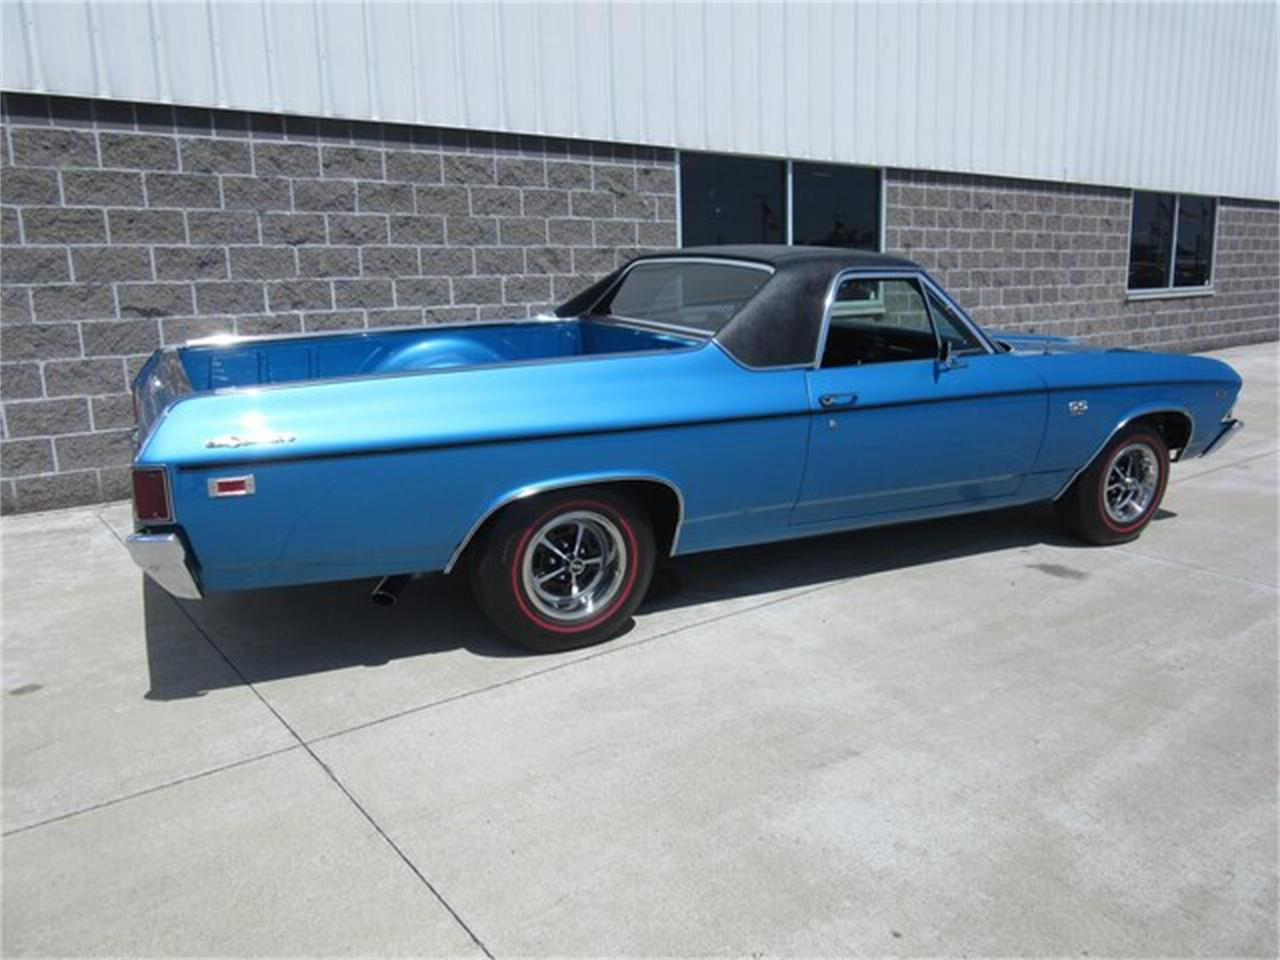 Large Picture of Classic 1969 Chevrolet El Camino located in Indiana Offered by Ray Skillman Classic Cars - QTRB